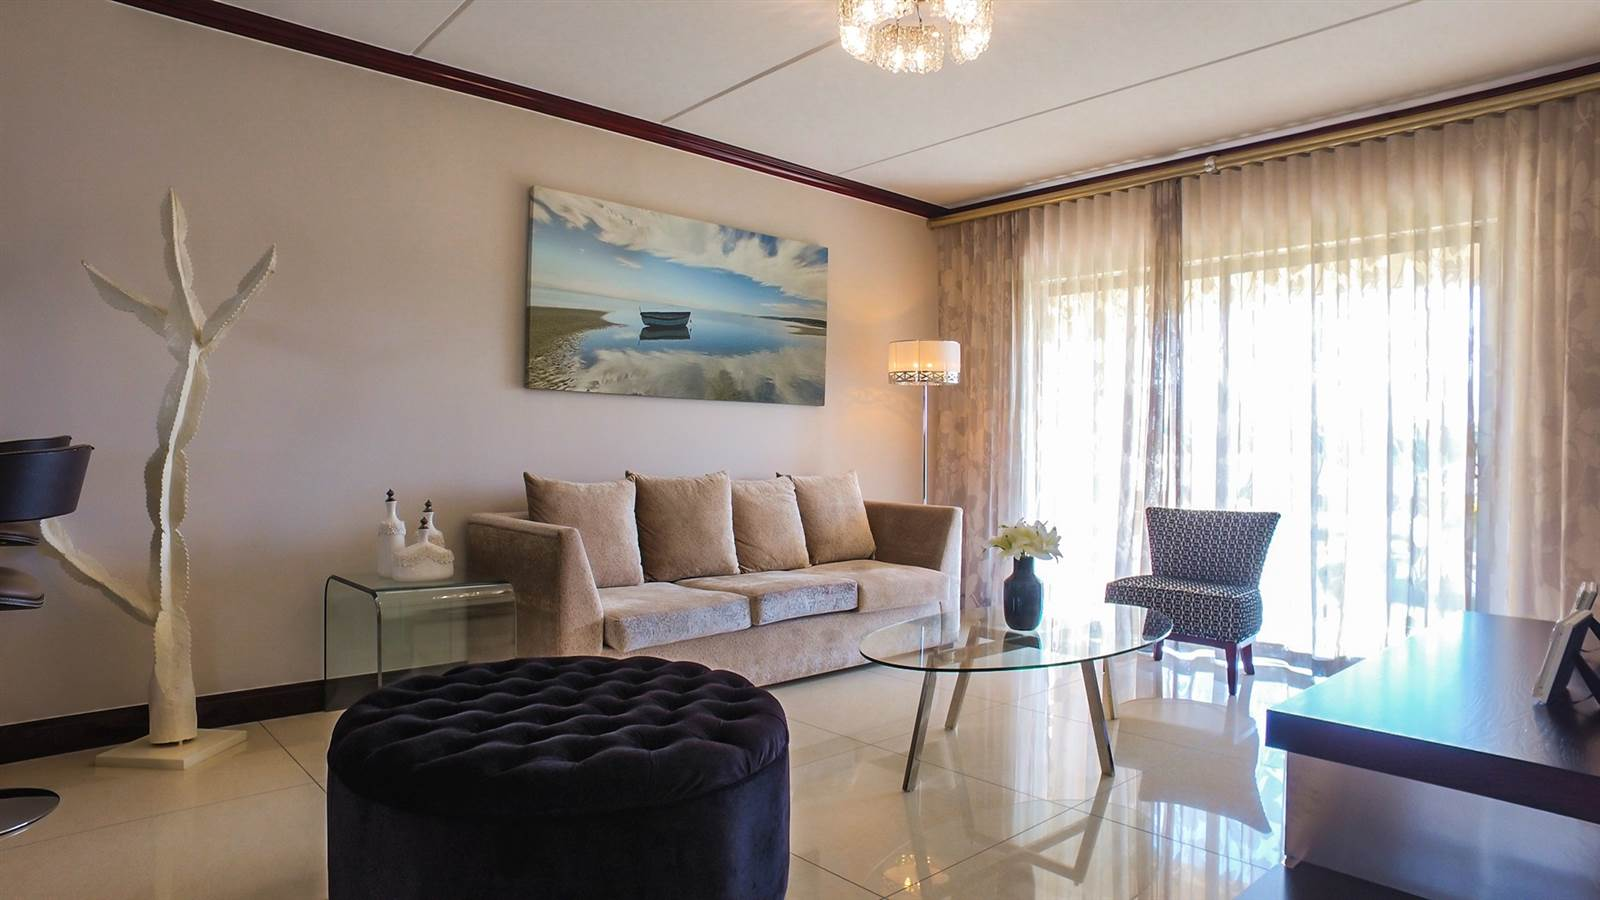 2 Bedroom Apartment for sale in Fourways ENT0040134 : photo#12